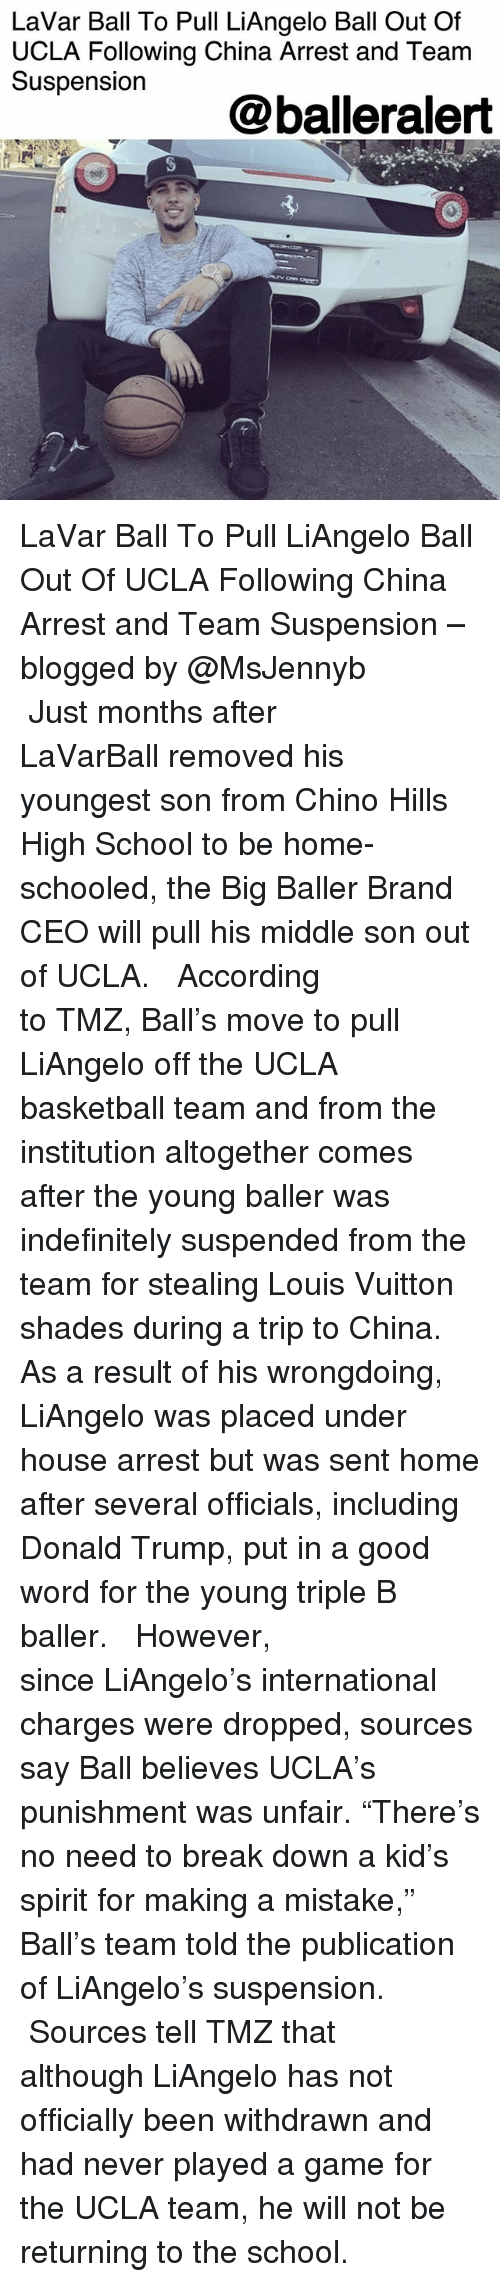 "schooled: LaVar Ball To Pull LiAngelo Ball Out Of  UCLA Following China Arrest and Team  Suspension  @balleralert LaVar Ball To Pull LiAngelo Ball Out Of UCLA Following China Arrest and Team Suspension – blogged by @MsJennyb ⠀⠀⠀⠀⠀⠀⠀ ⠀⠀⠀⠀⠀⠀⠀ Just months after LaVarBall removed his youngest son from Chino Hills High School to be home-schooled, the Big Baller Brand CEO will pull his middle son out of UCLA. ⠀⠀⠀⠀⠀⠀⠀ ⠀⠀⠀⠀⠀⠀⠀ According to TMZ, Ball's move to pull LiAngelo off the UCLA basketball team and from the institution altogether comes after the young baller was indefinitely suspended from the team for stealing Louis Vuitton shades during a trip to China. As a result of his wrongdoing, LiAngelo was placed under house arrest but was sent home after several officials, including Donald Trump, put in a good word for the young triple B baller. ⠀⠀⠀⠀⠀⠀⠀ ⠀⠀⠀⠀⠀⠀⠀ However, since LiAngelo's international charges were dropped, sources say Ball believes UCLA's punishment was unfair. ""There's no need to break down a kid's spirit for making a mistake,"" Ball's team told the publication of LiAngelo's suspension. ⠀⠀⠀⠀⠀⠀⠀ ⠀⠀⠀⠀⠀⠀⠀ Sources tell TMZ that although LiAngelo has not officially been withdrawn and had never played a game for the UCLA team, he will not be returning to the school."